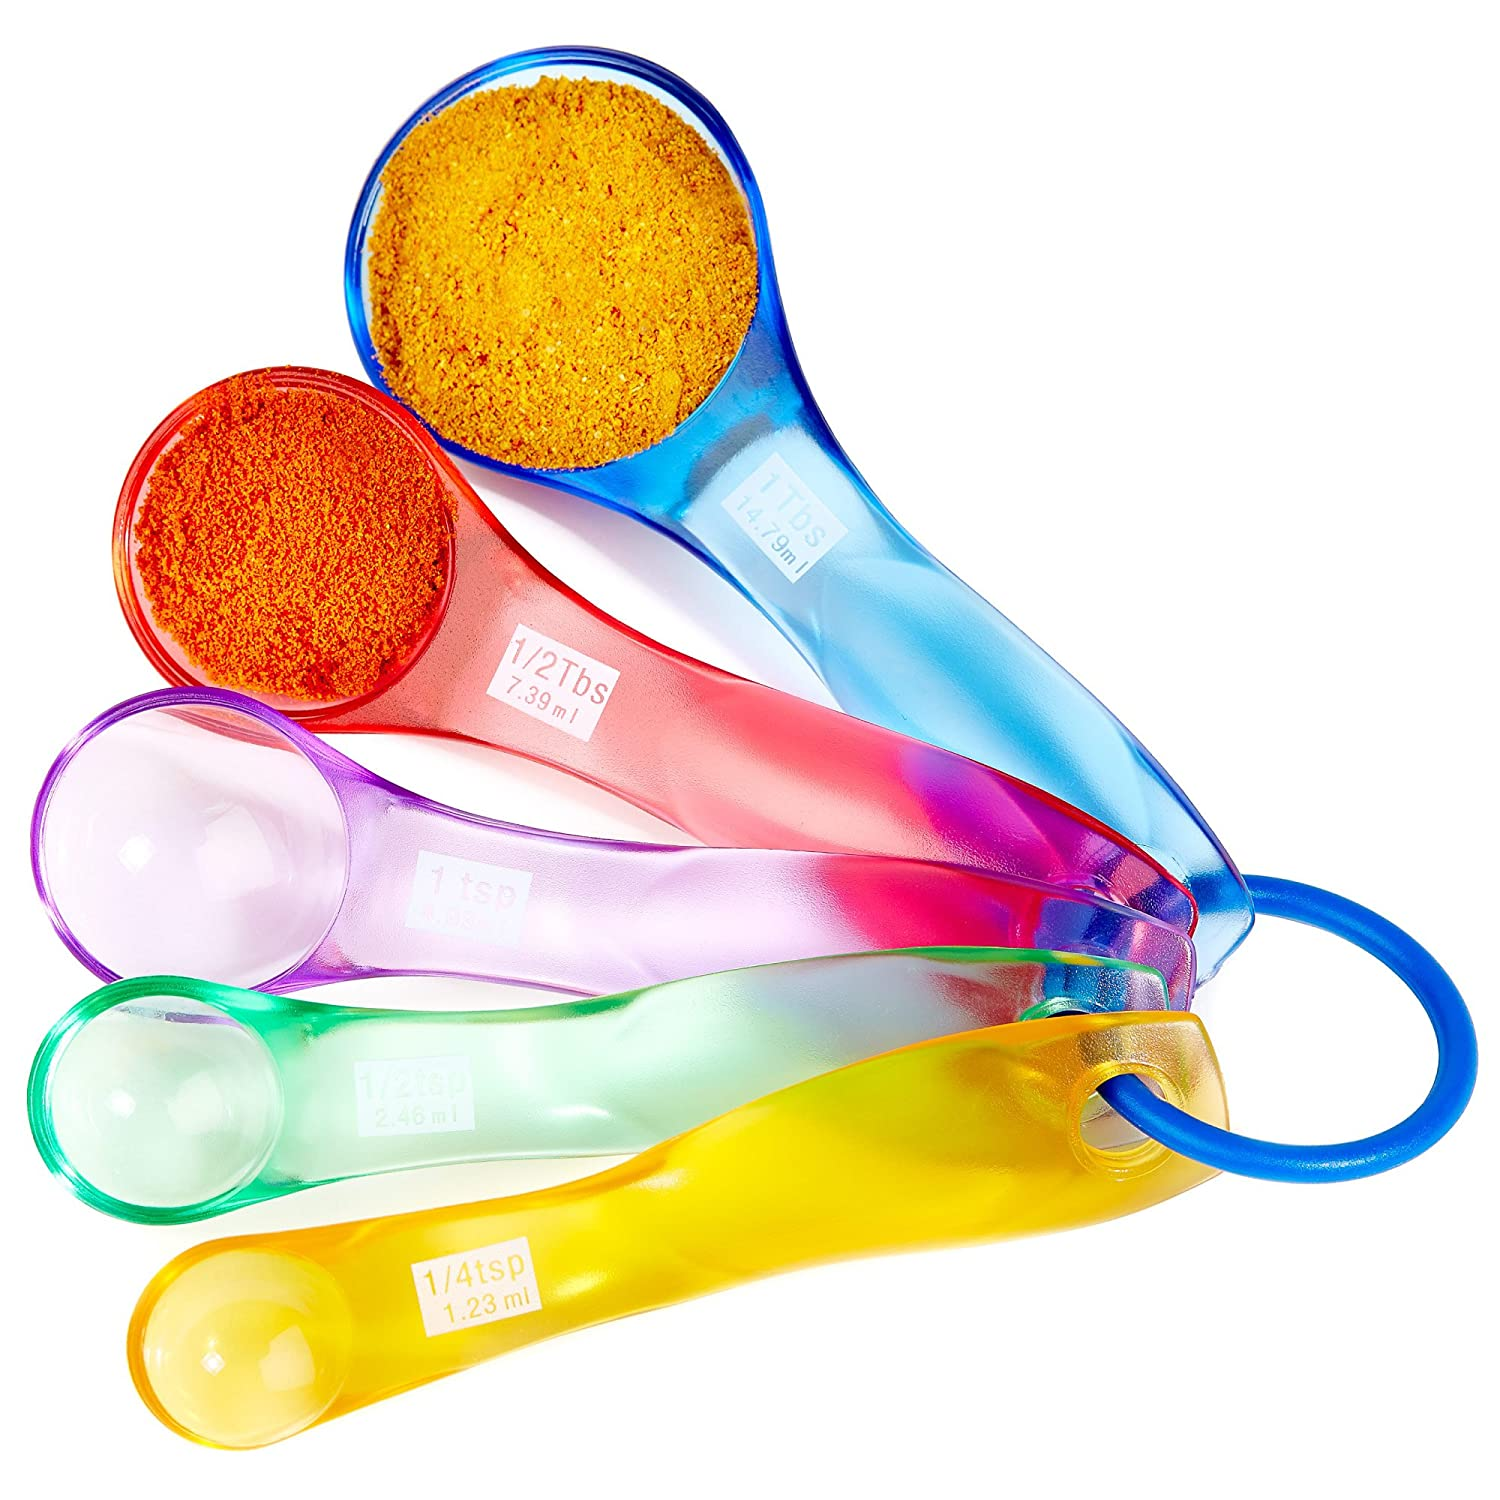 Andrew James Measuring Spoons | 5 Piece Colourful Plastic Spoon Set | ML and UK Spoon Sizes ¼ Tsp to 1Tbsp